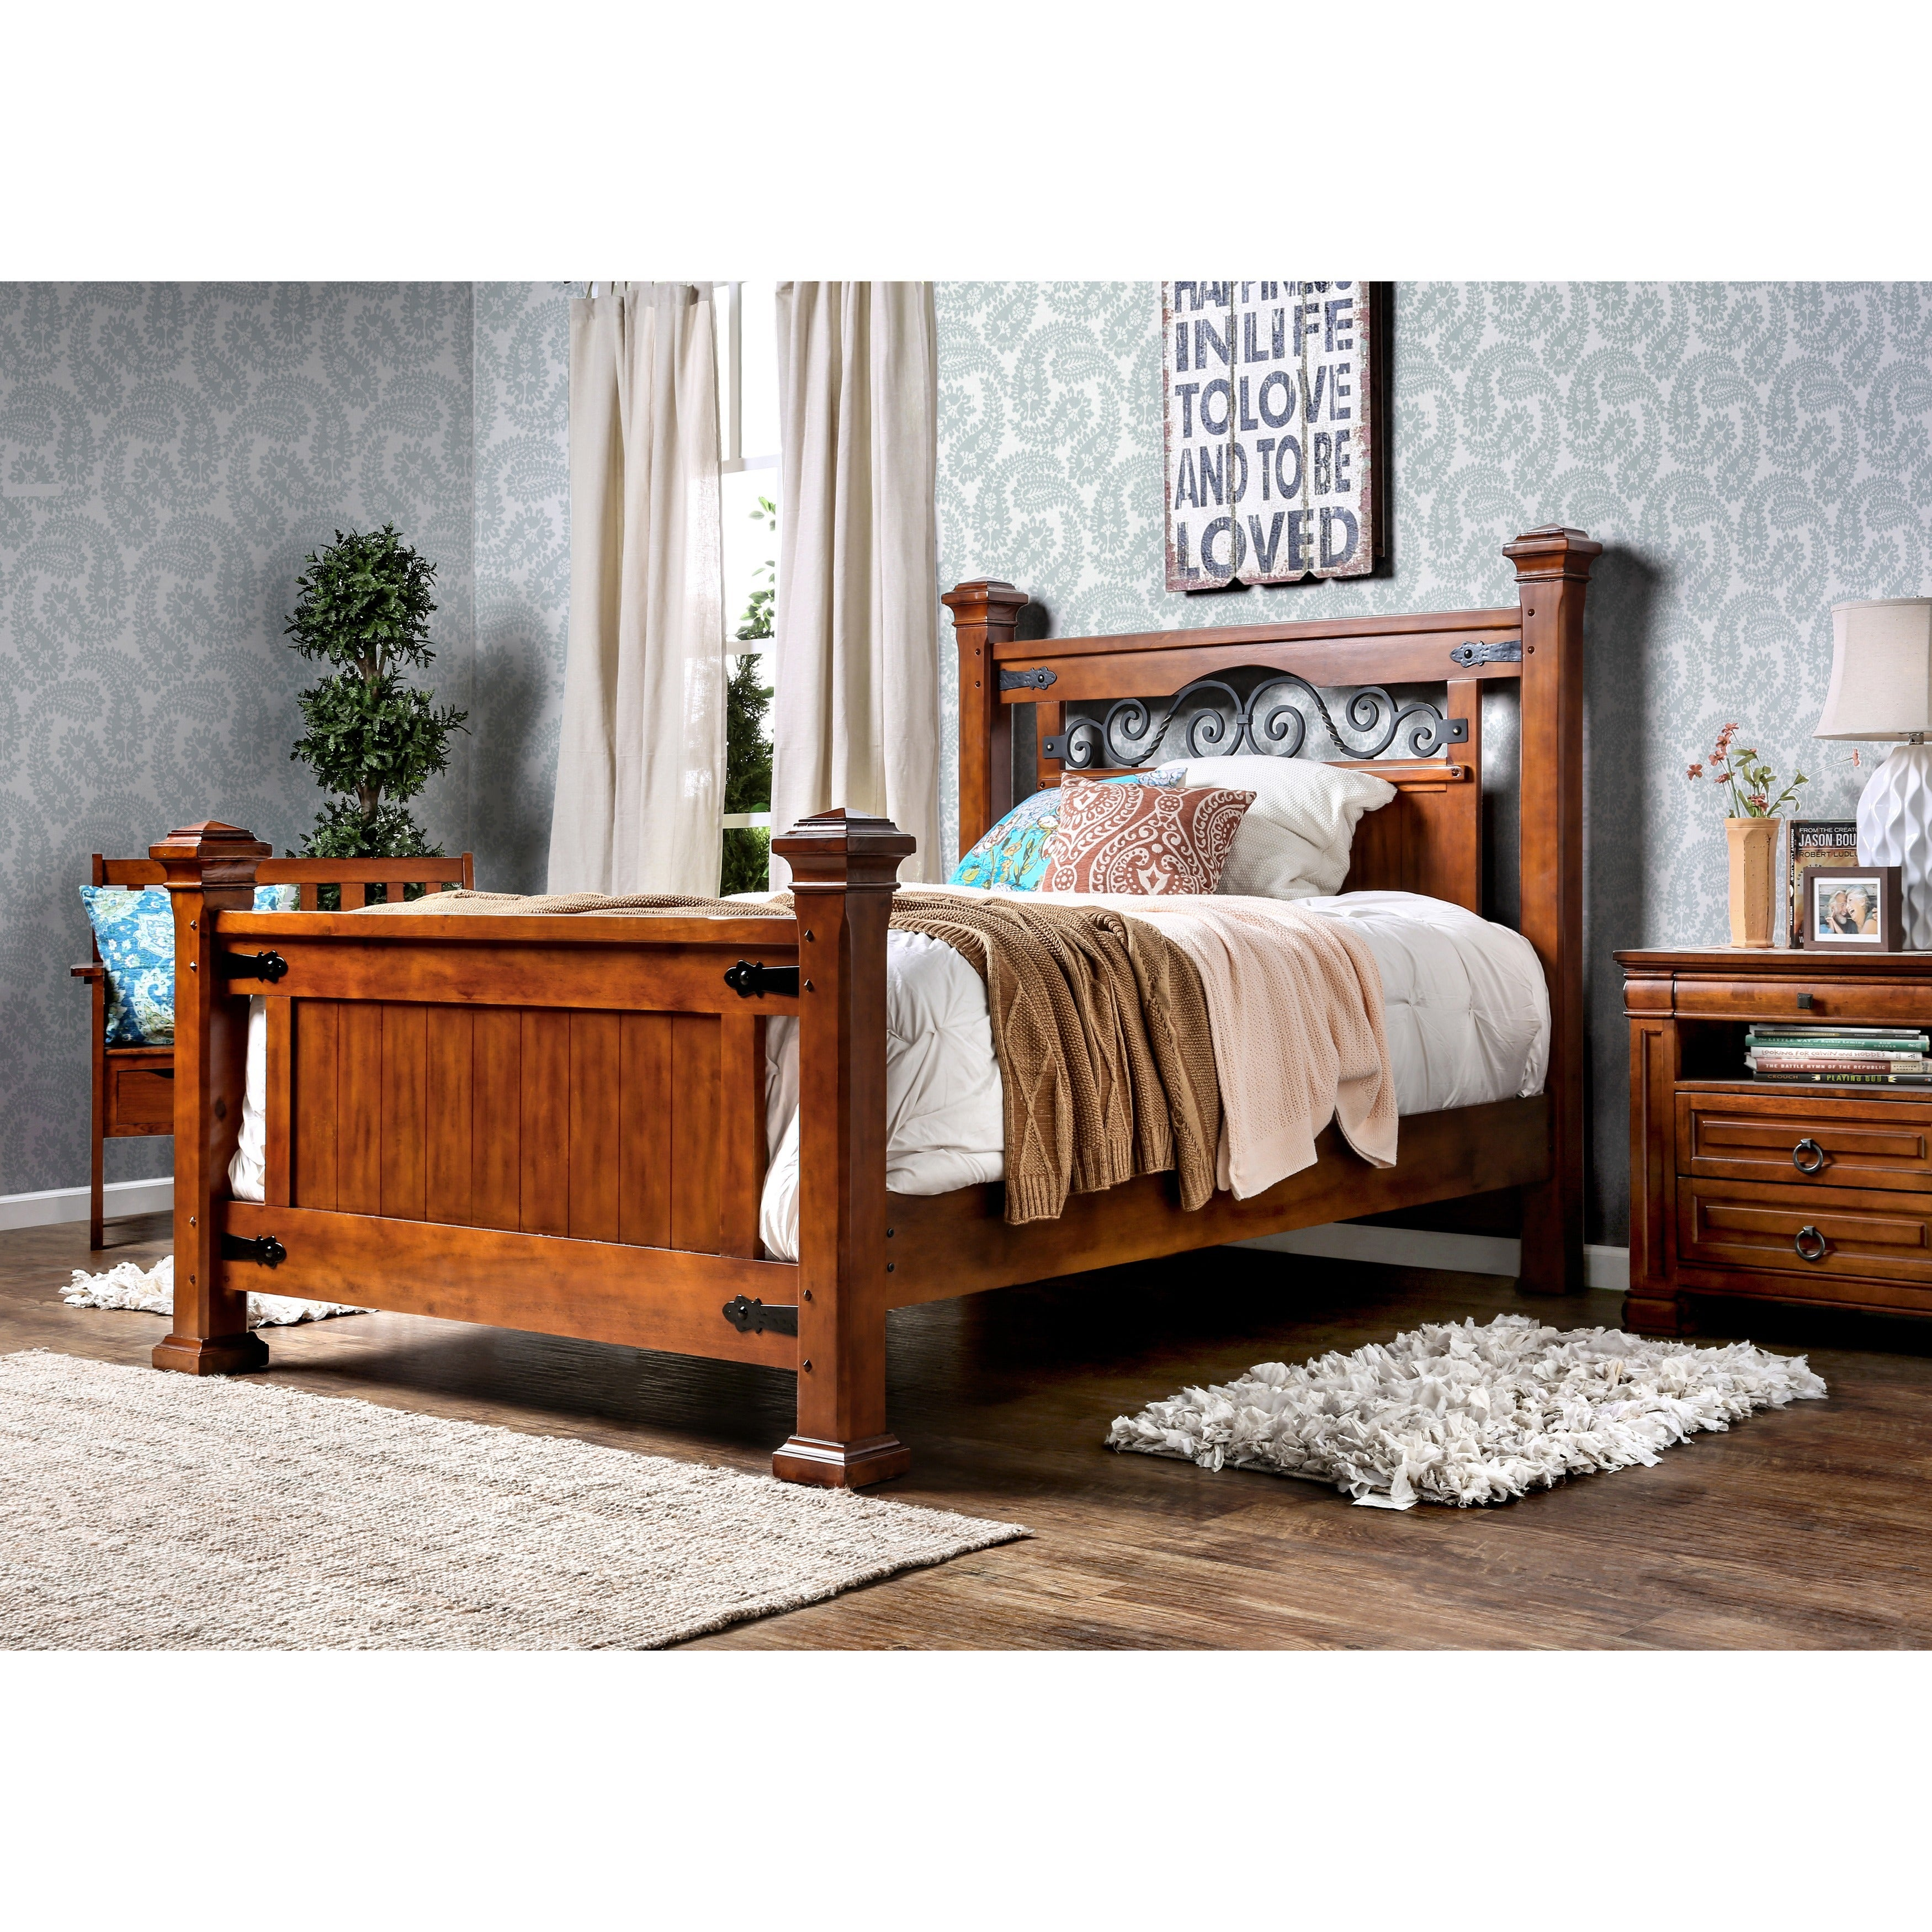 Furniture Of America Country Style Poster Bed  Free Shipping